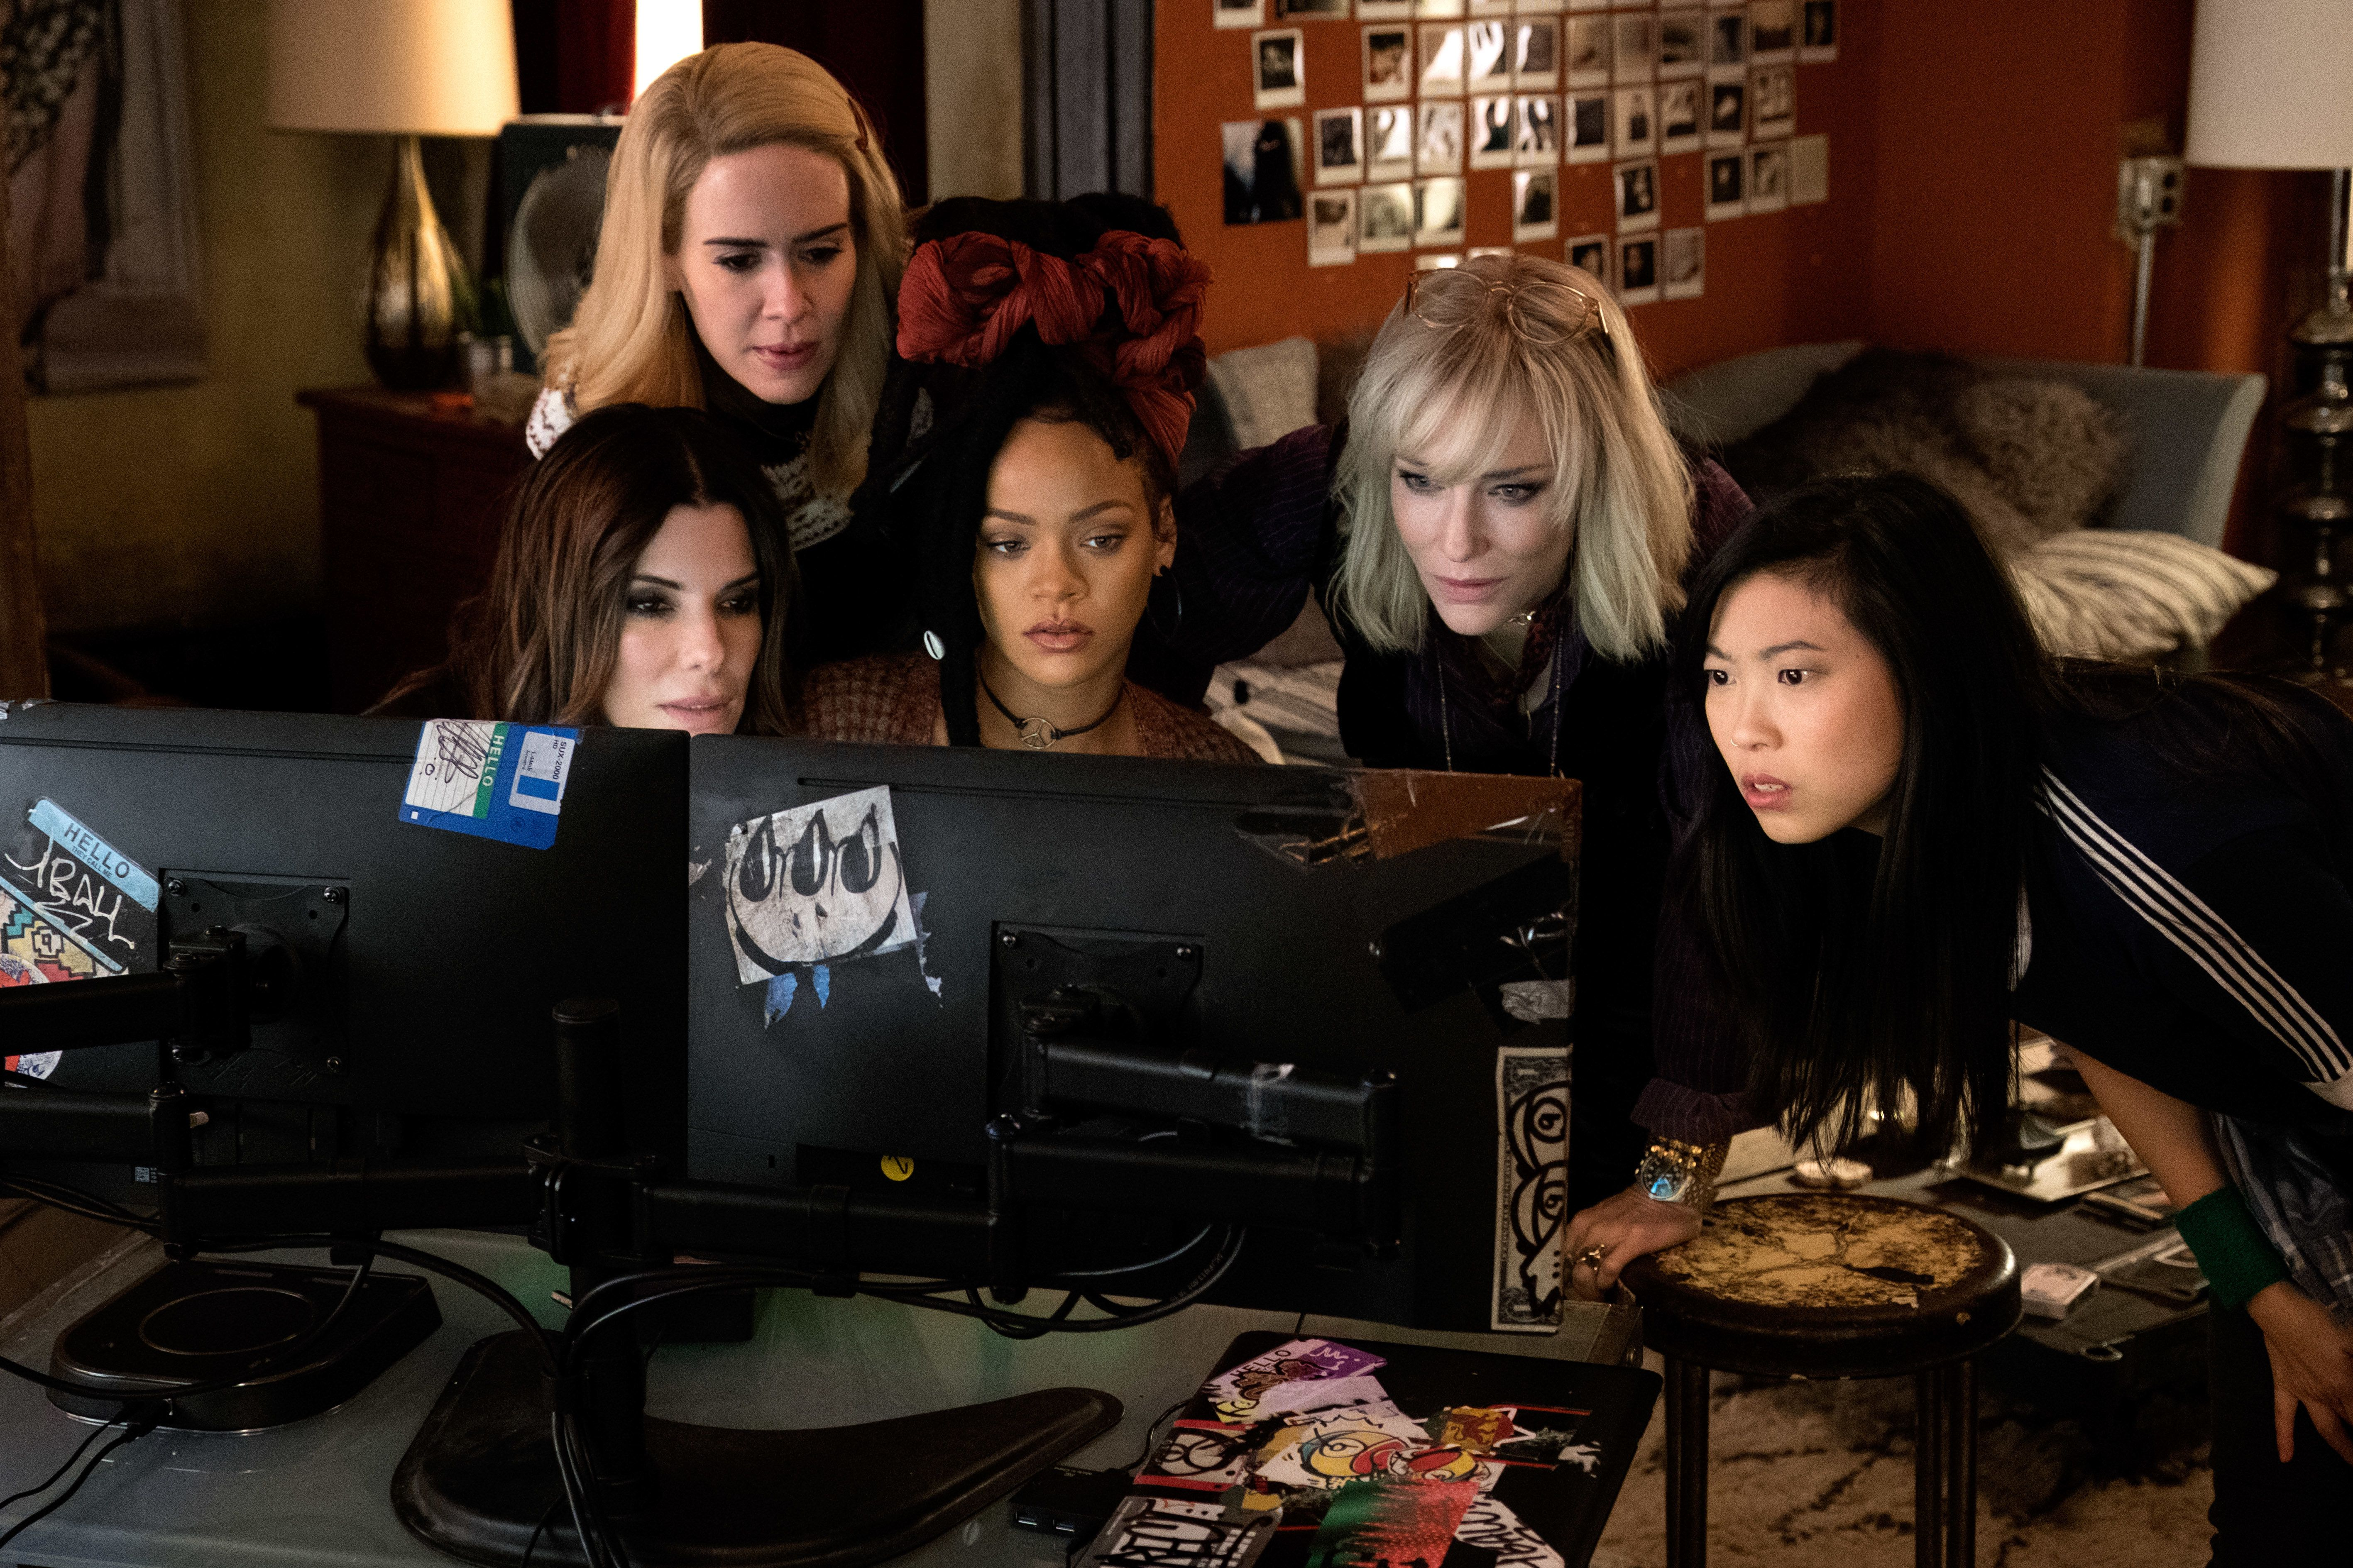 But How Feasible Is The 'Ocean's 8' Heist Really? A Blow-By-Blow